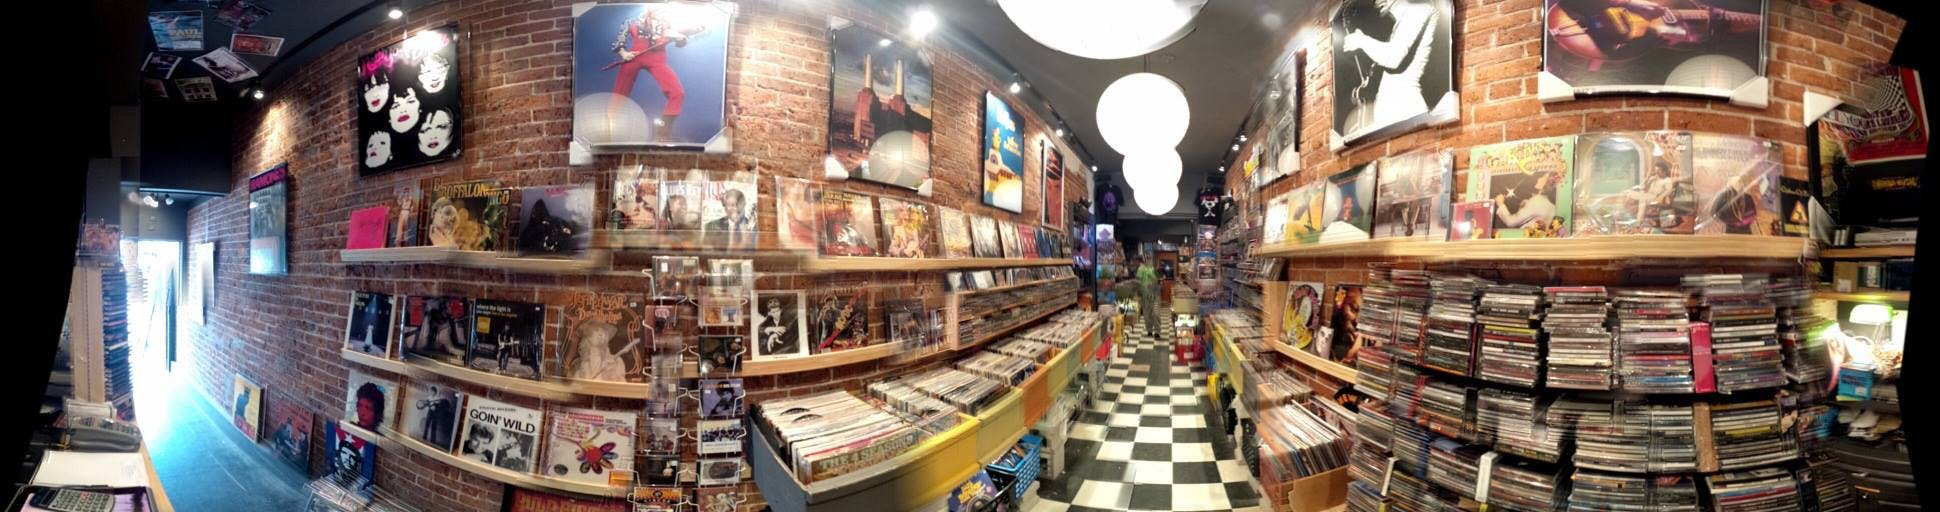 Alleycats Music & Art - Record Store Image